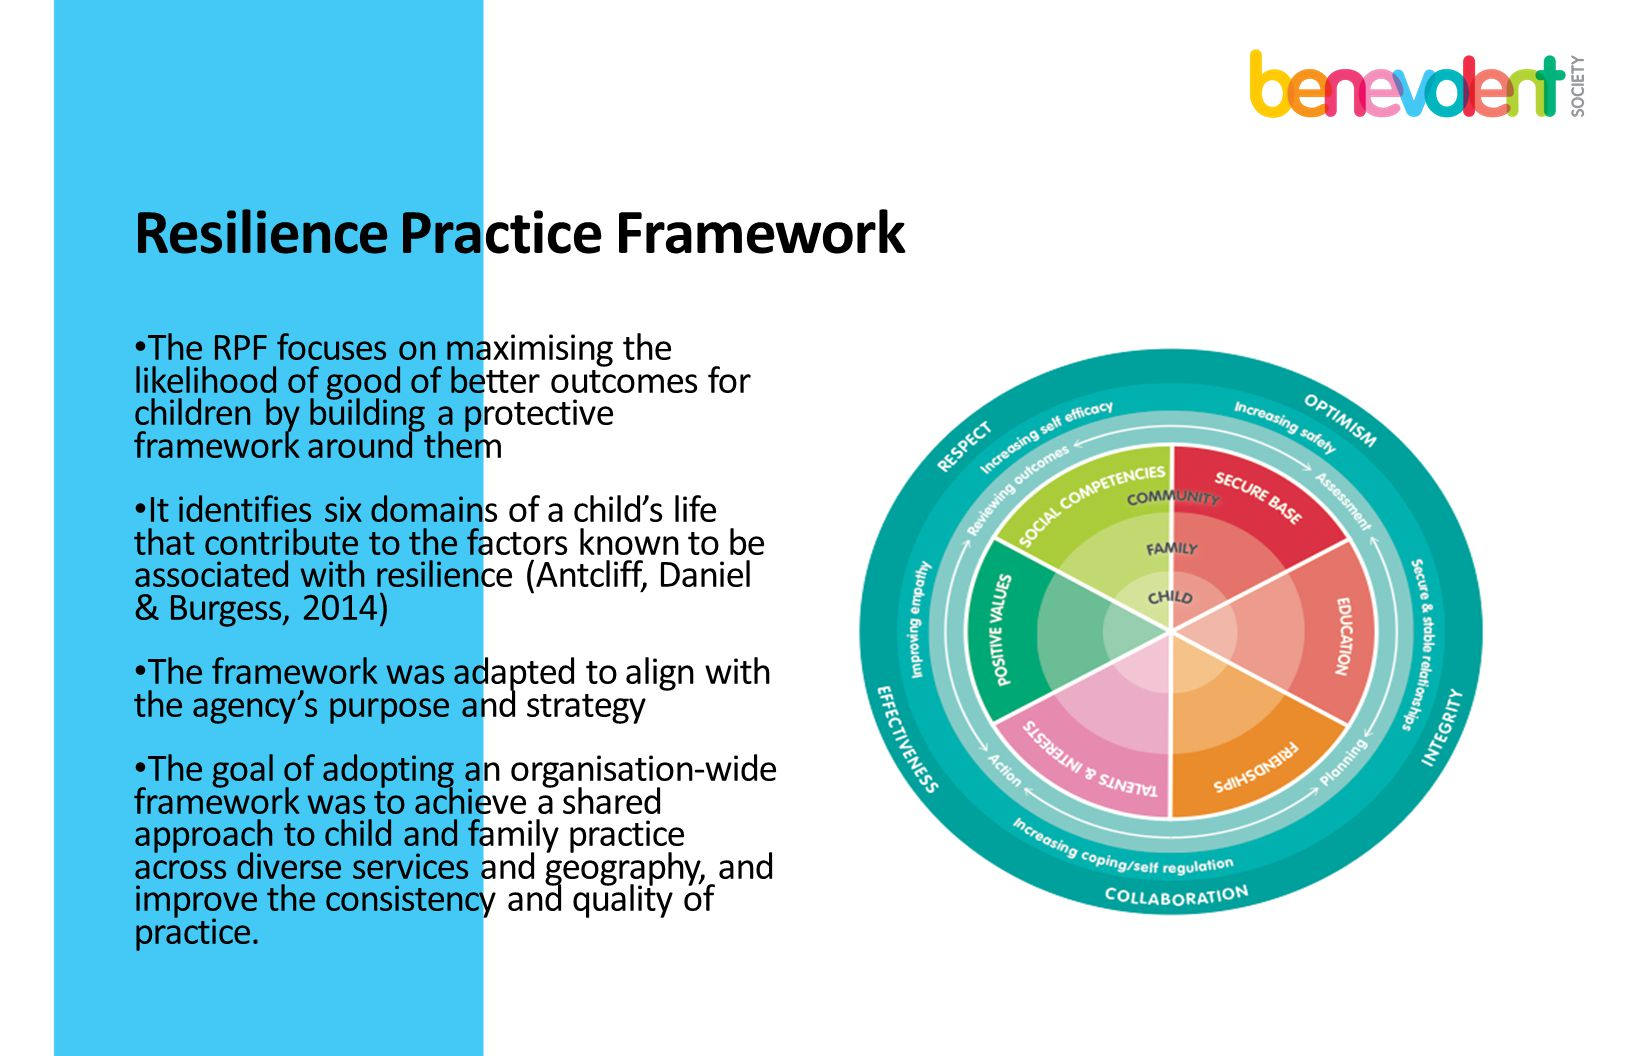 Resilience Practice Framework The RPF focuses on maximising the likelihood of good of better outcomes for children by building a protective framework